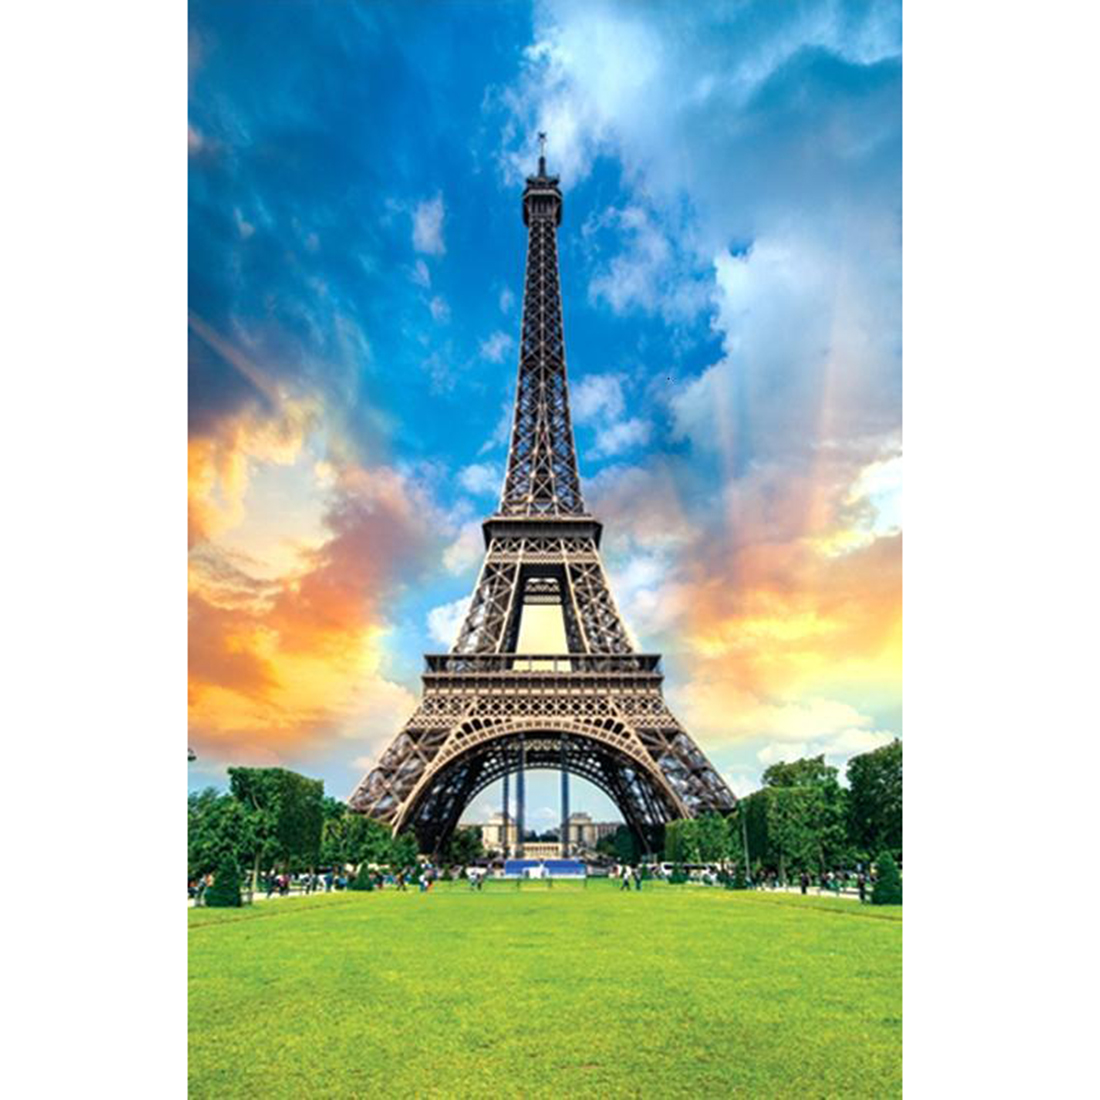 1000 Pieces Adult Puzzle Kids Jigsaw Landscape Puzzles Educational Toys For Children Adult Puzzles Gift DIY Jigsaw Puzzle Toys